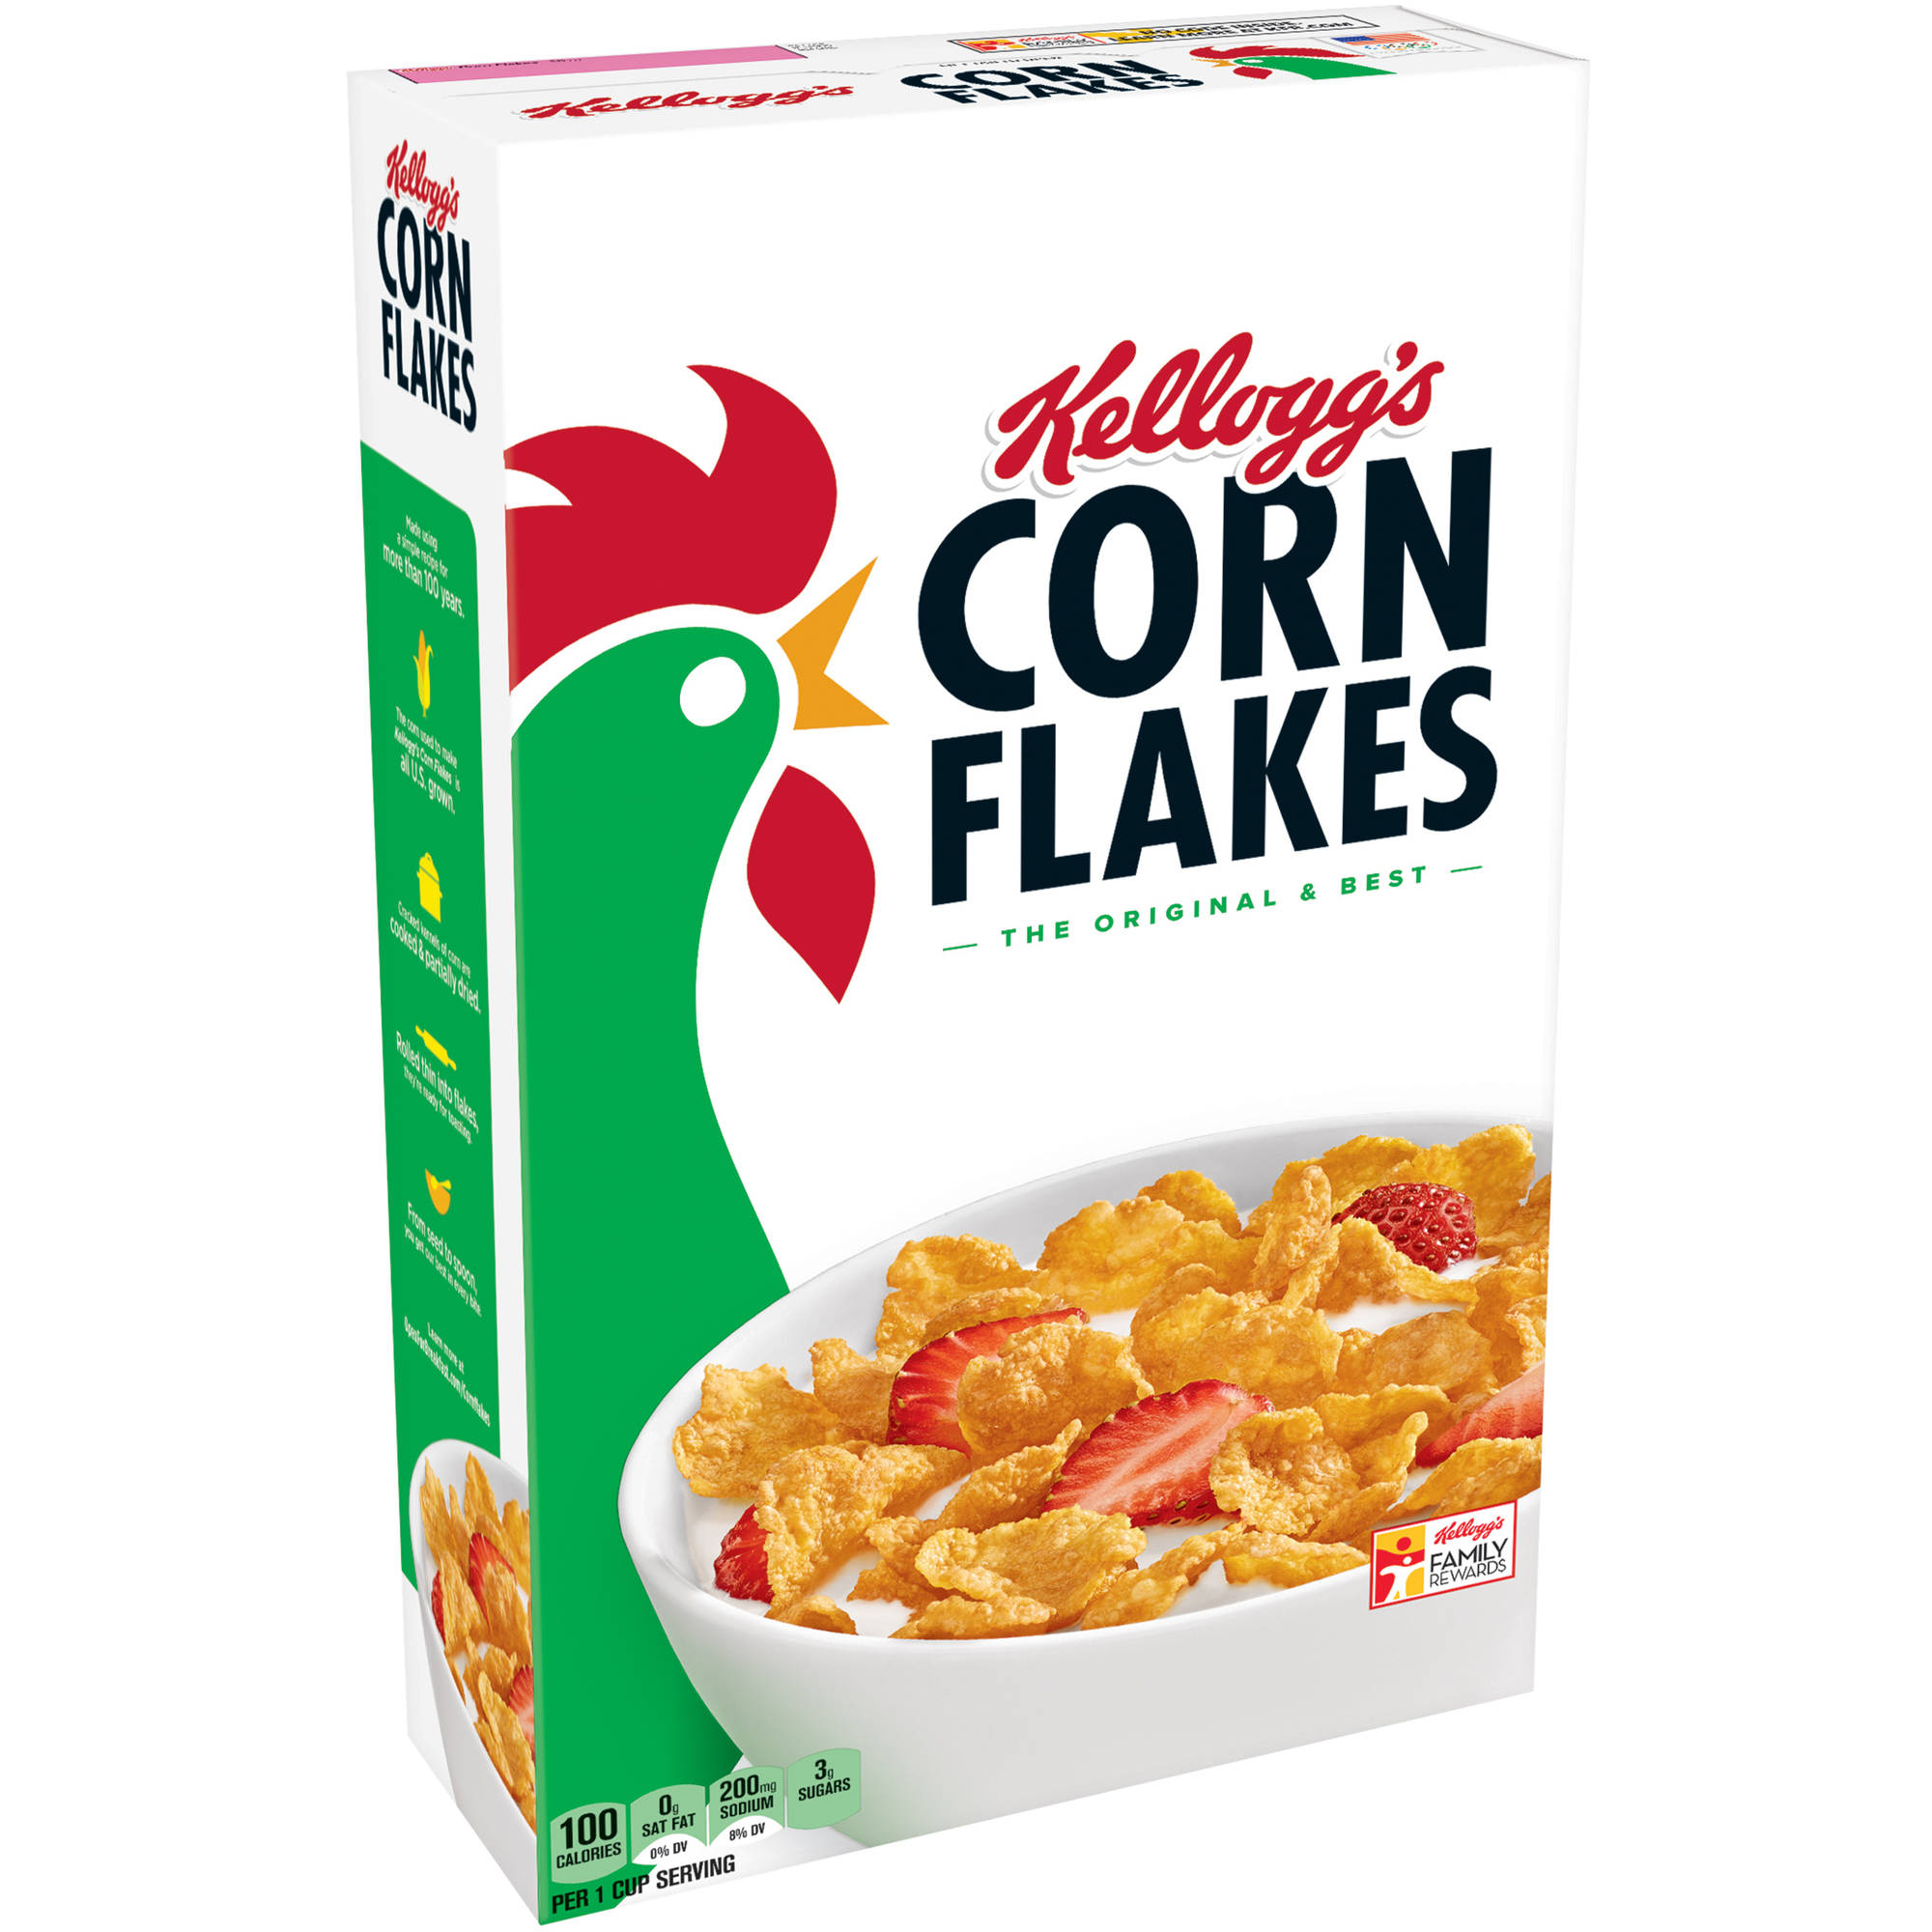 Kellogg's Corn Flakes Cereal The Original, 24 ounce